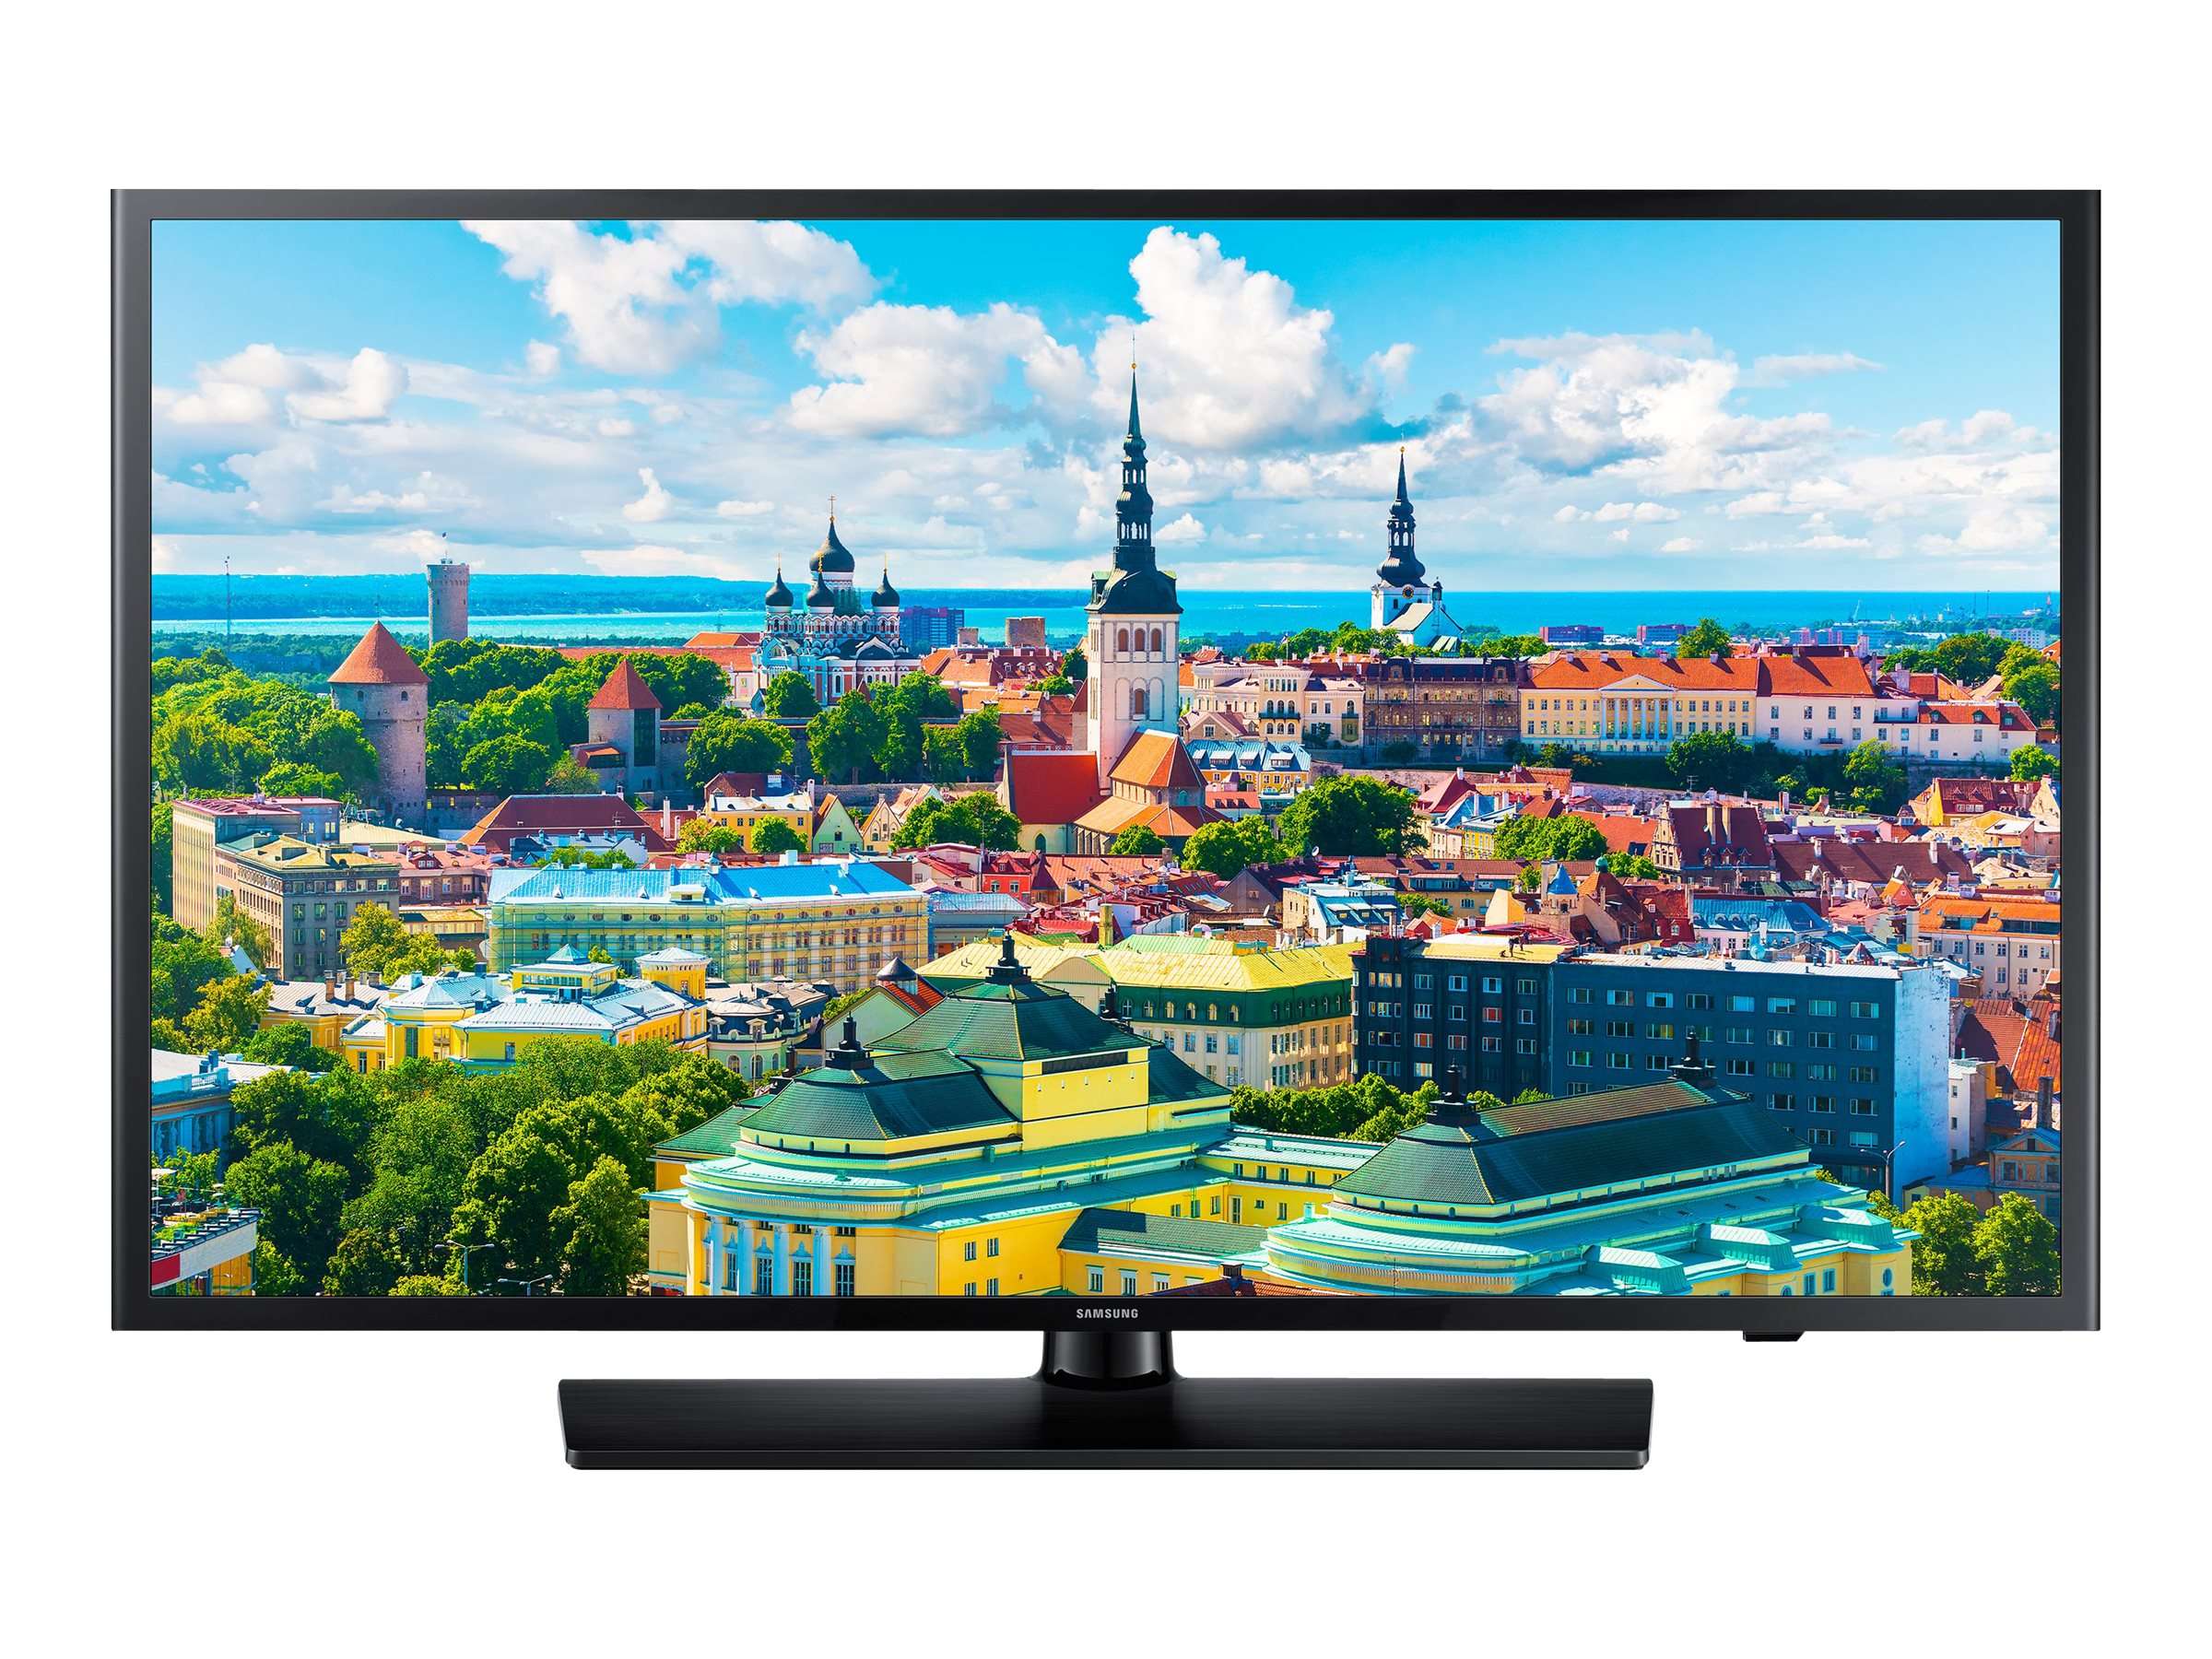 Samsung 50 477 Series Full HD LED-LCD Hospitality TV, Black, HG50ND477SFXZA, 30650258, Televisions - LED-LCD Commercial